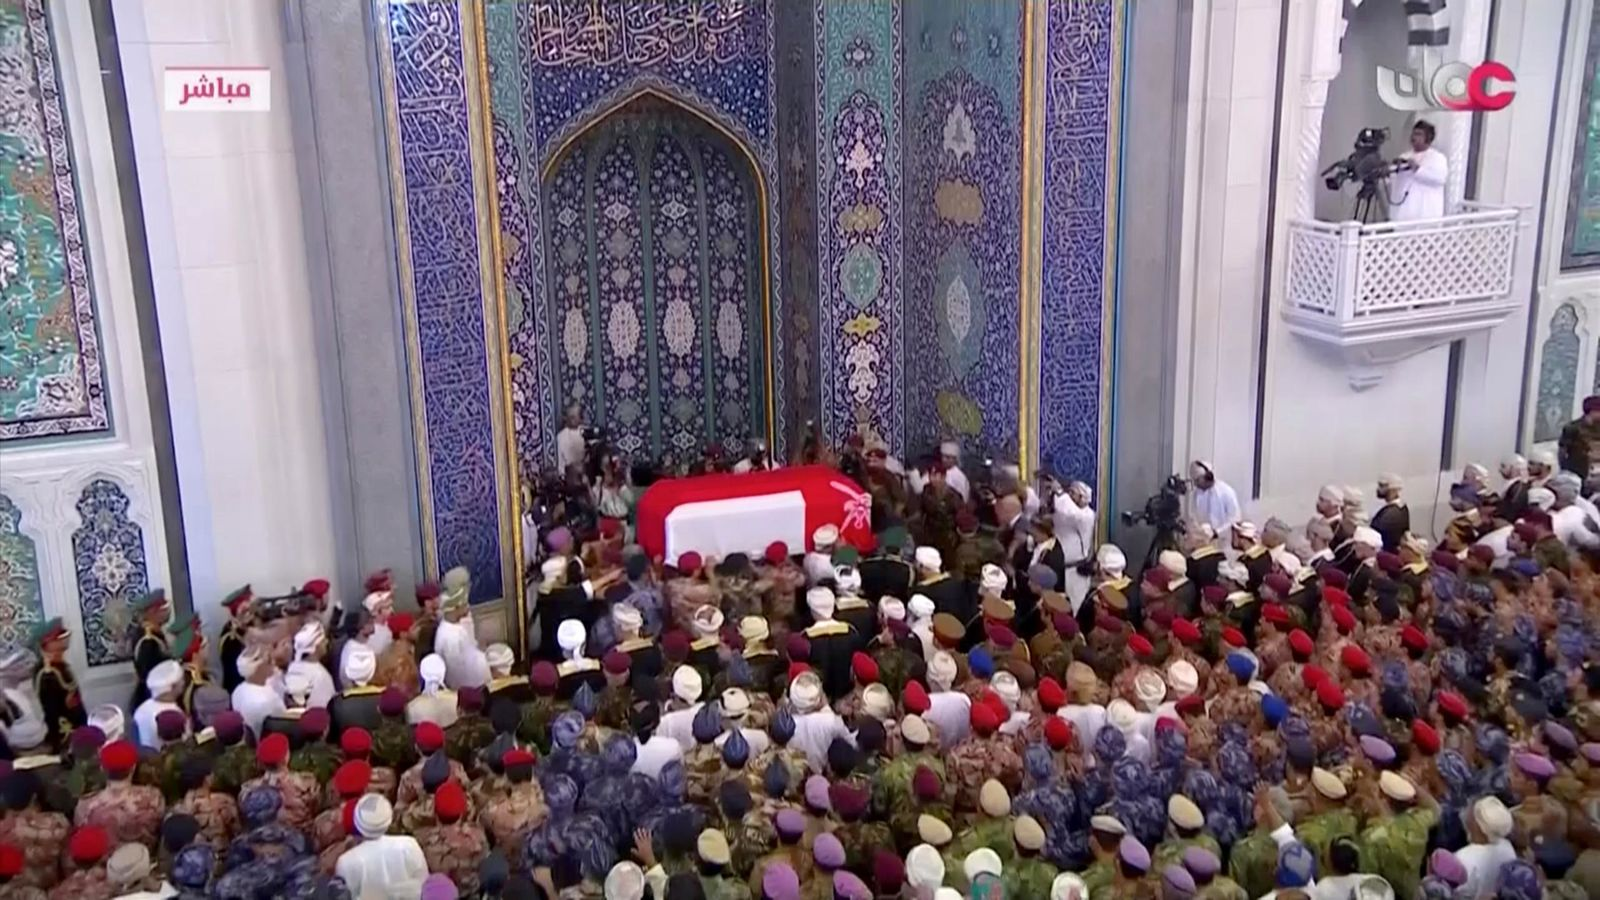 This image made from video shows the coffin of Oman's Sultan Qaboos bin Said, arrives at Sultan Qaboos Grand Mosque in Muscat, Oman, Saturday, Jan. 11, 2020.  Sultan Qaboos bin Said, the Mideast's longest-ruling monarch who seized power in a 1970 palace coup and pulled his Arabian sultanate into modernity while carefully balancing diplomatic ties between adversaries Iran and the U.S., has died. He was 79. (Oman TV via AP)